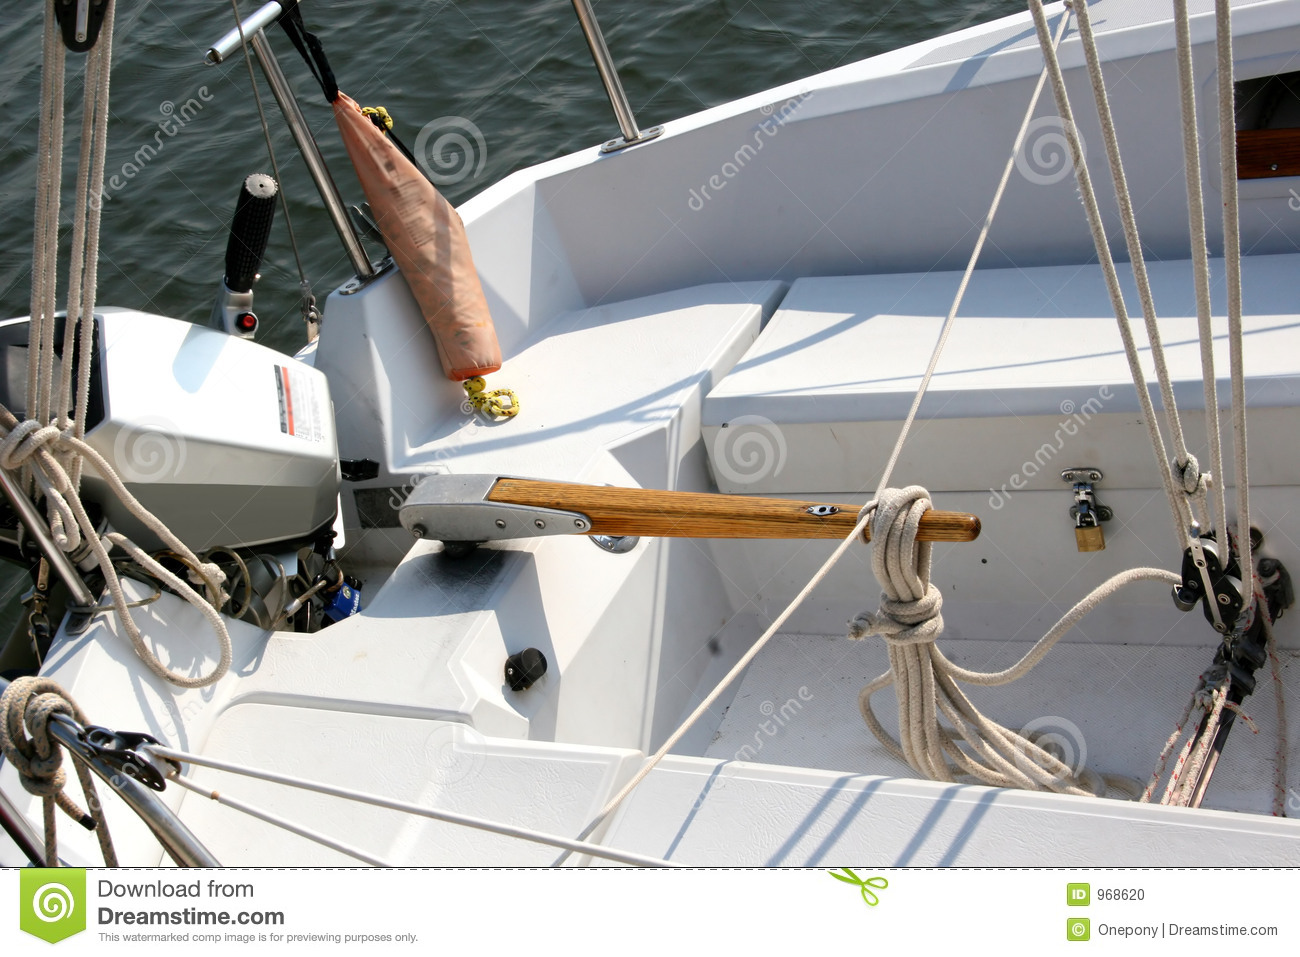 Boat Tiller stock photo  Image of lines, vessel, knots - 968620